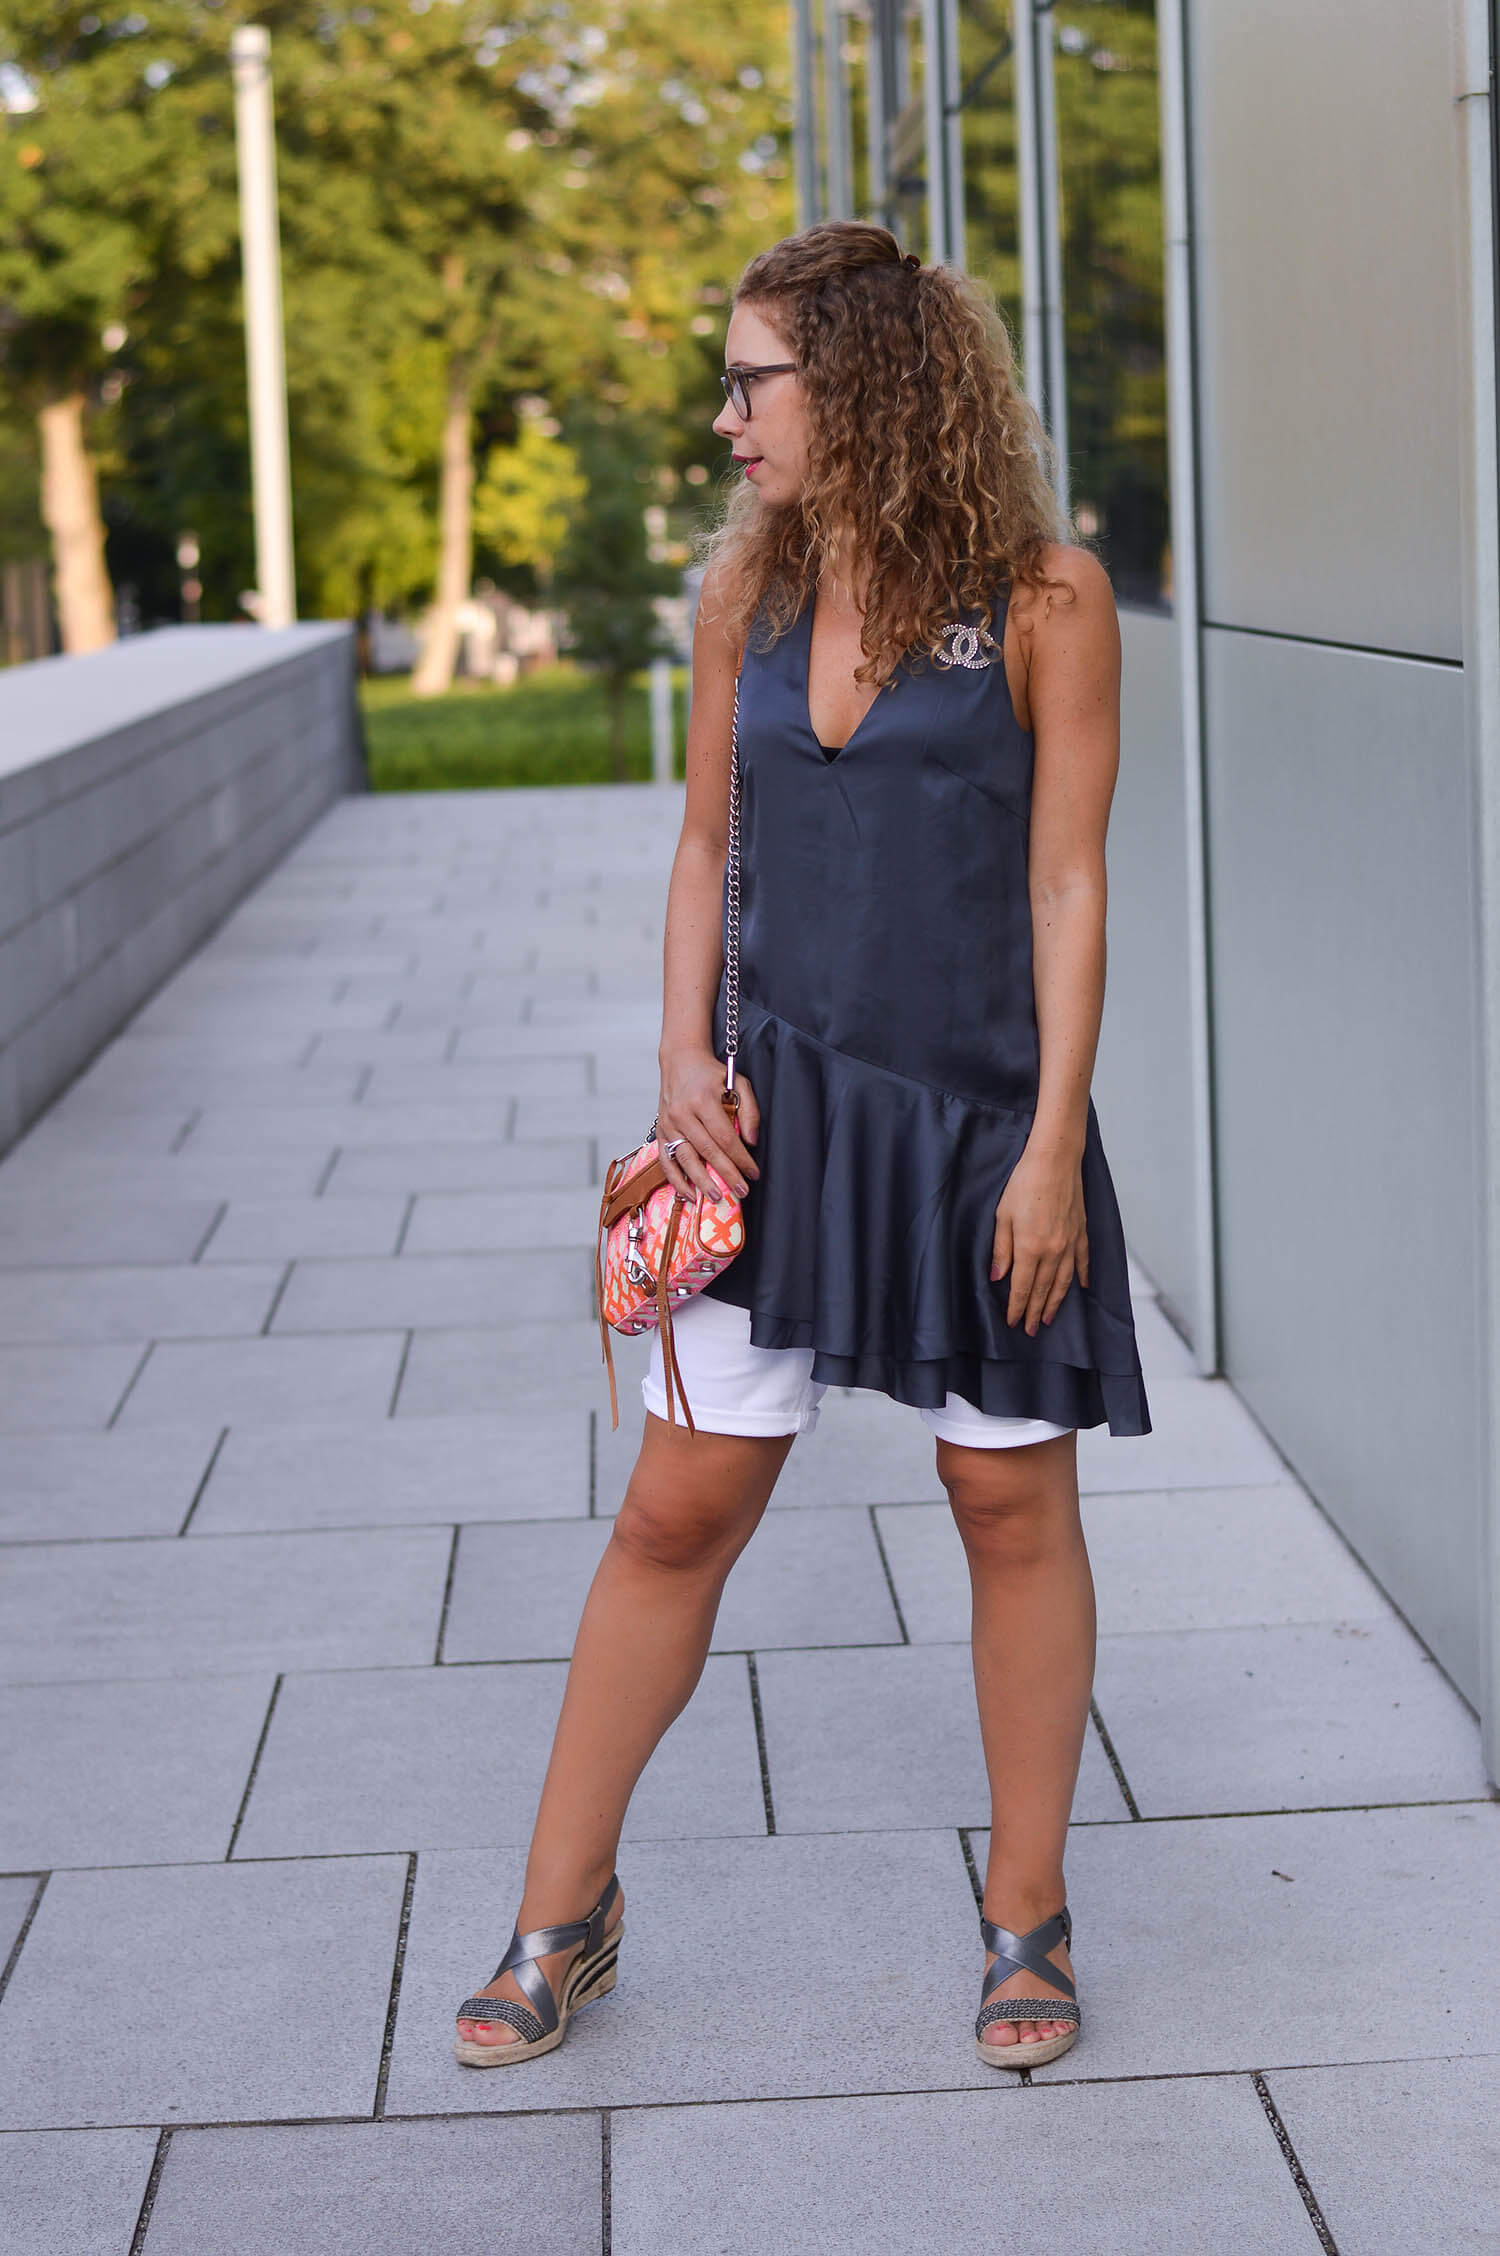 Kationette-fashionblog-nrw-Outfit-Satin-Tunic-Rebecca-Minkoff-Wedges